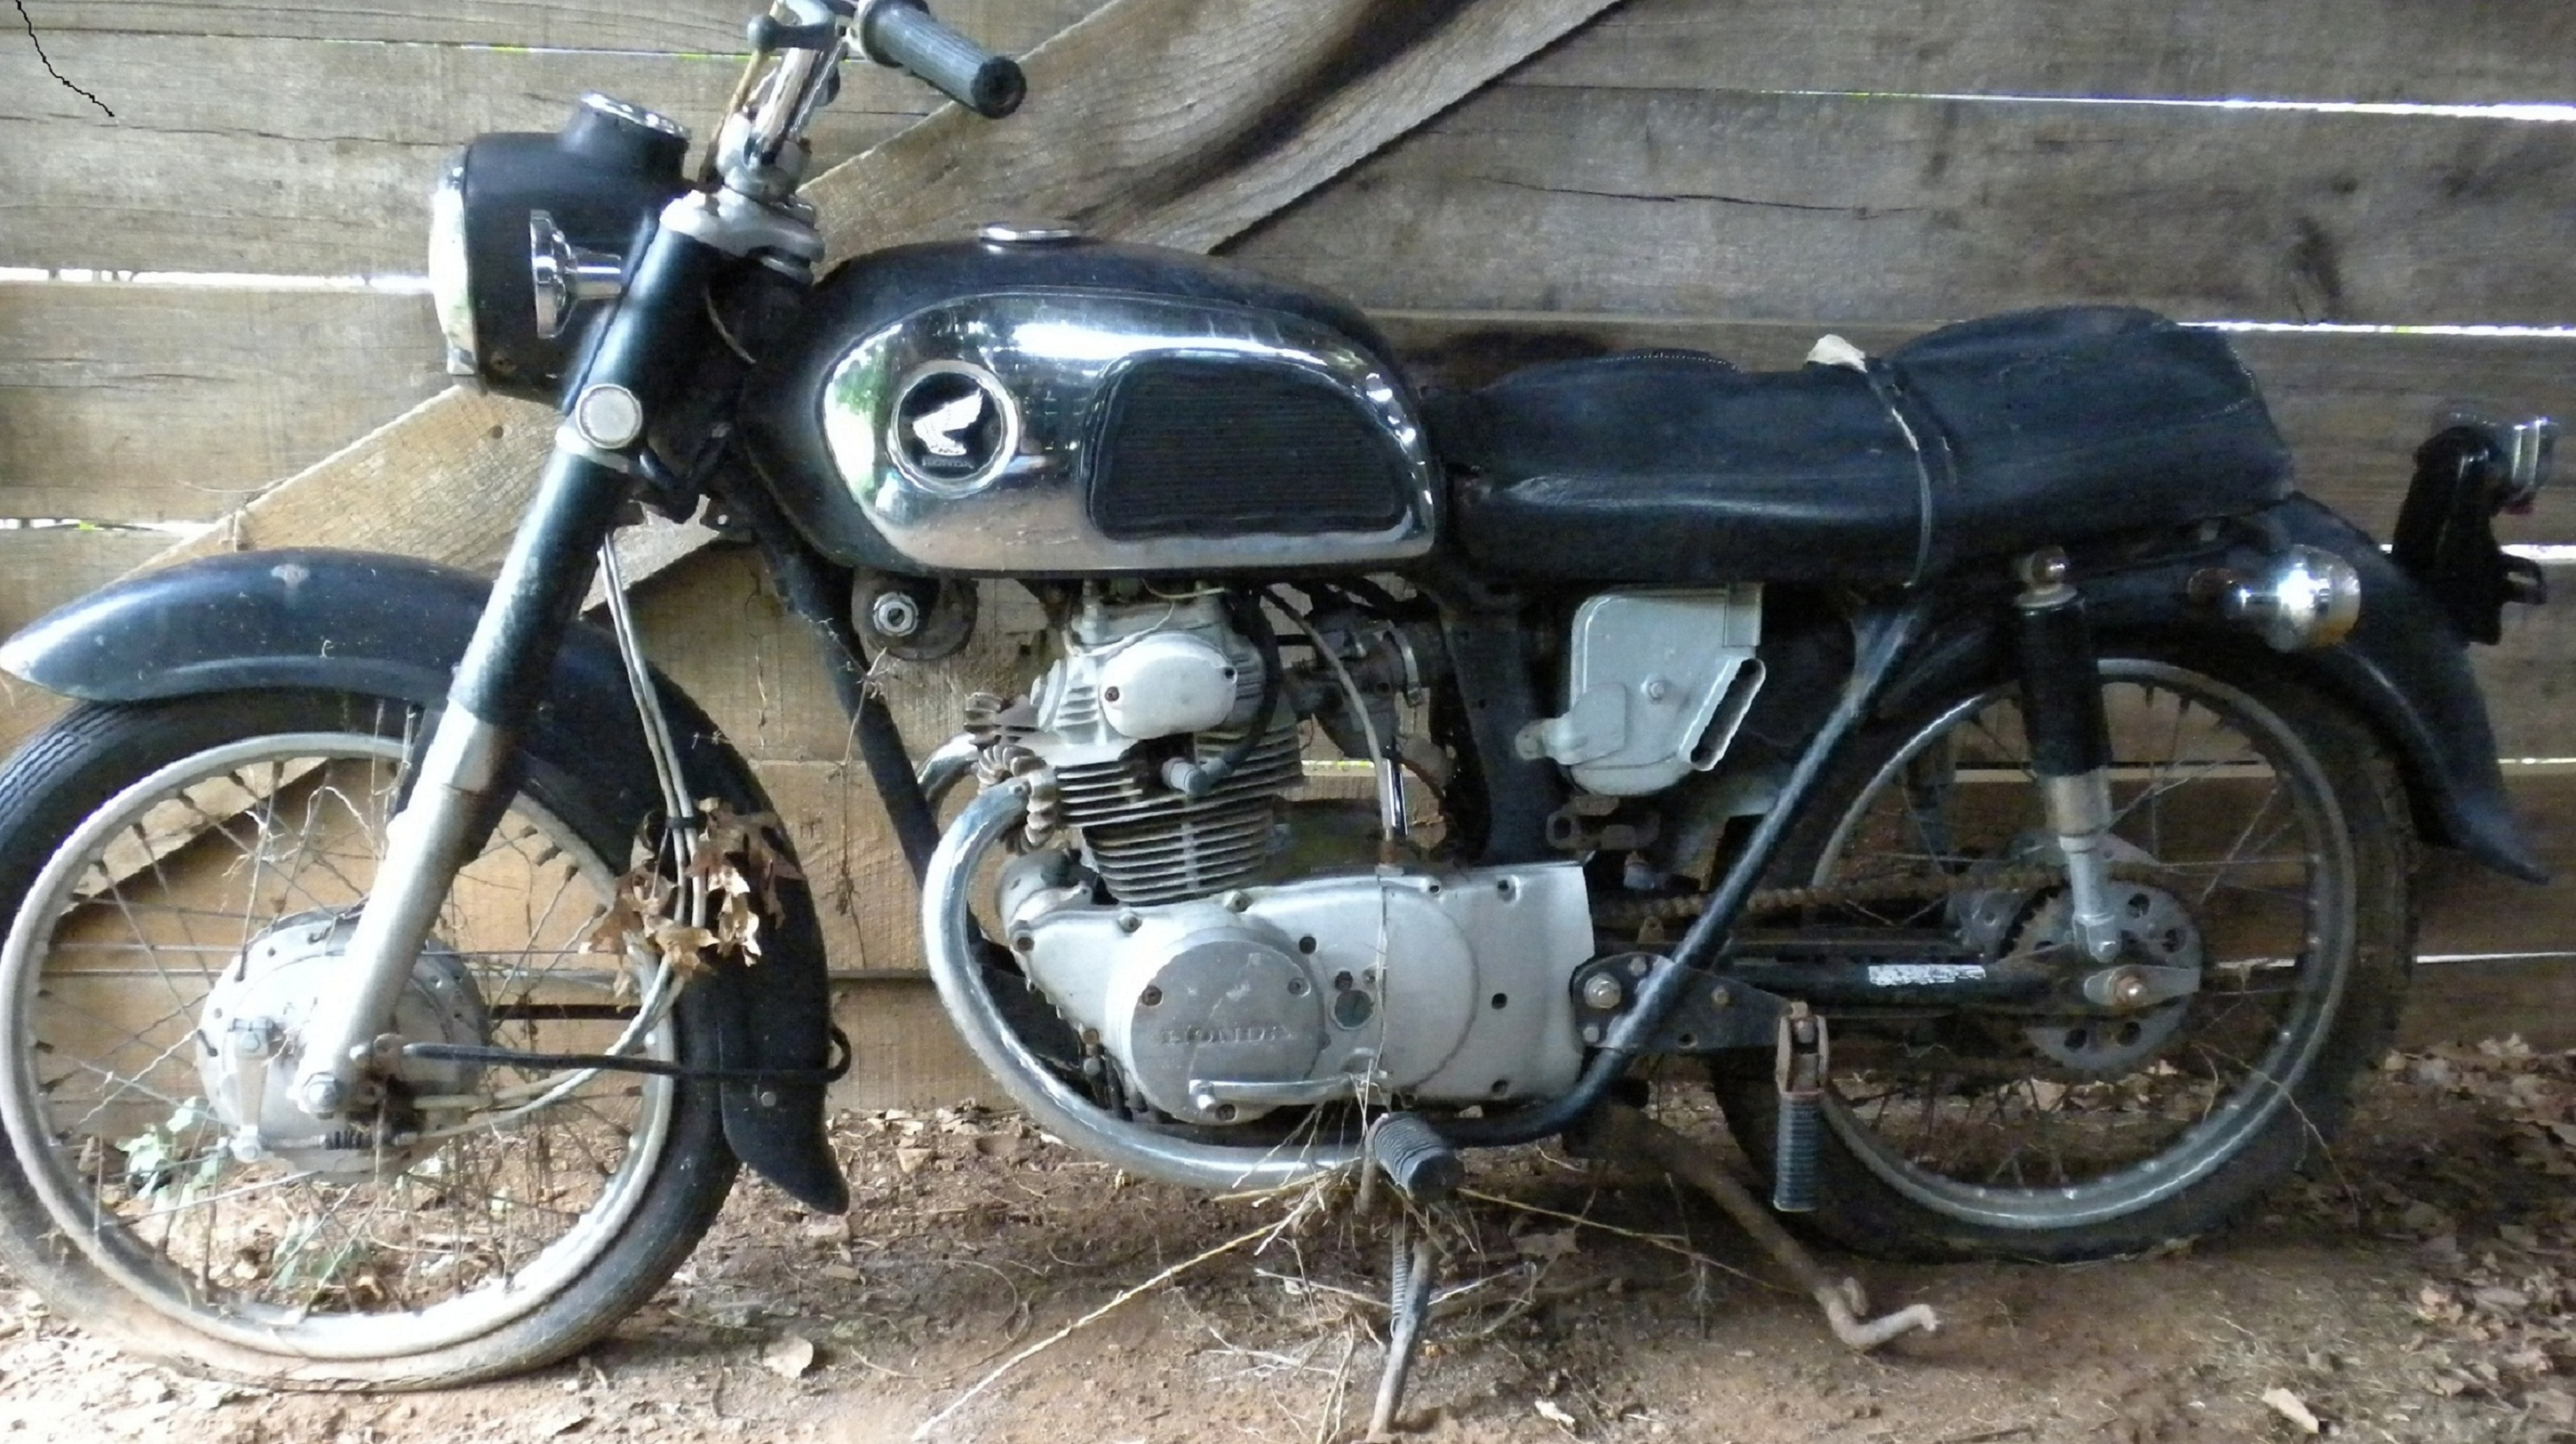 Honda Cd175 First Bike Project Ca175 Wiring Diagram Serenity Side Cropped